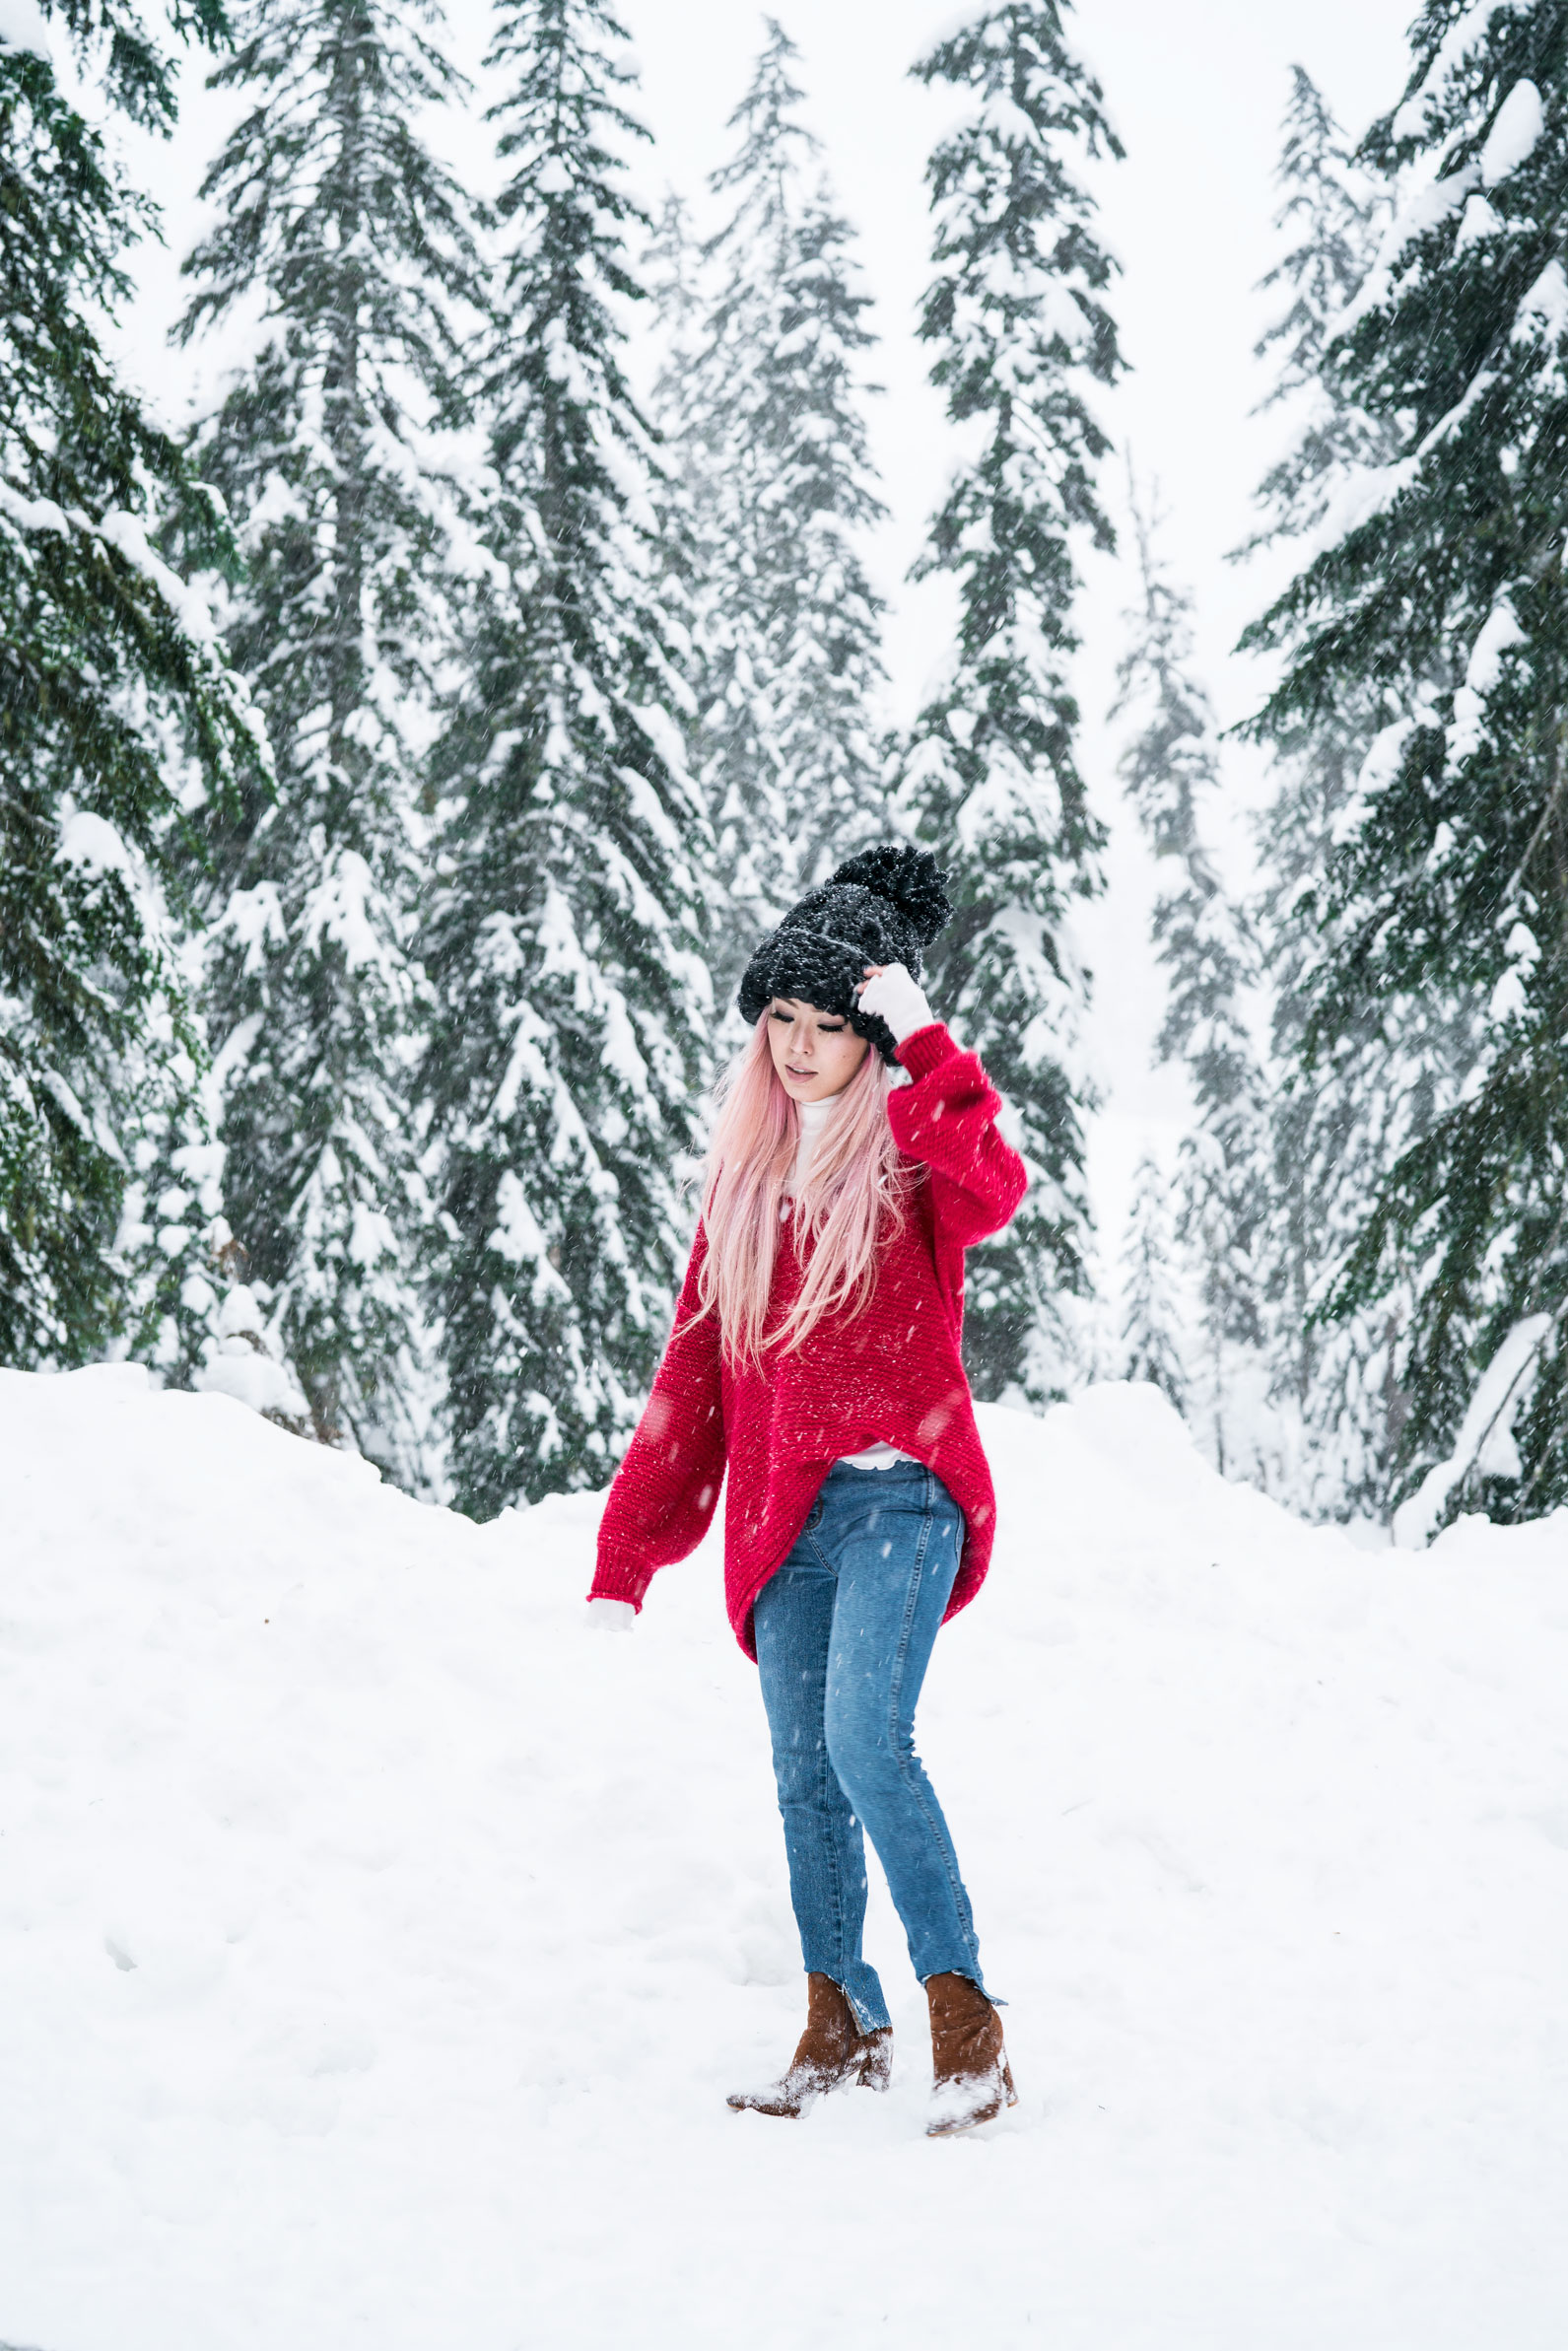 H&M Multi Colored Scarf, Transparent Clear Lens Glasses, Free people All Mine Sweater, Free People Modern Cuff Layering Top, Free People Ace High Rise Jeans, Free People Bobbi Chunky Pom Beanie, EGO Ankle Boots, Aika's Love Closet, Seattle Fashion Blogger from Japan, Pink Hair 9